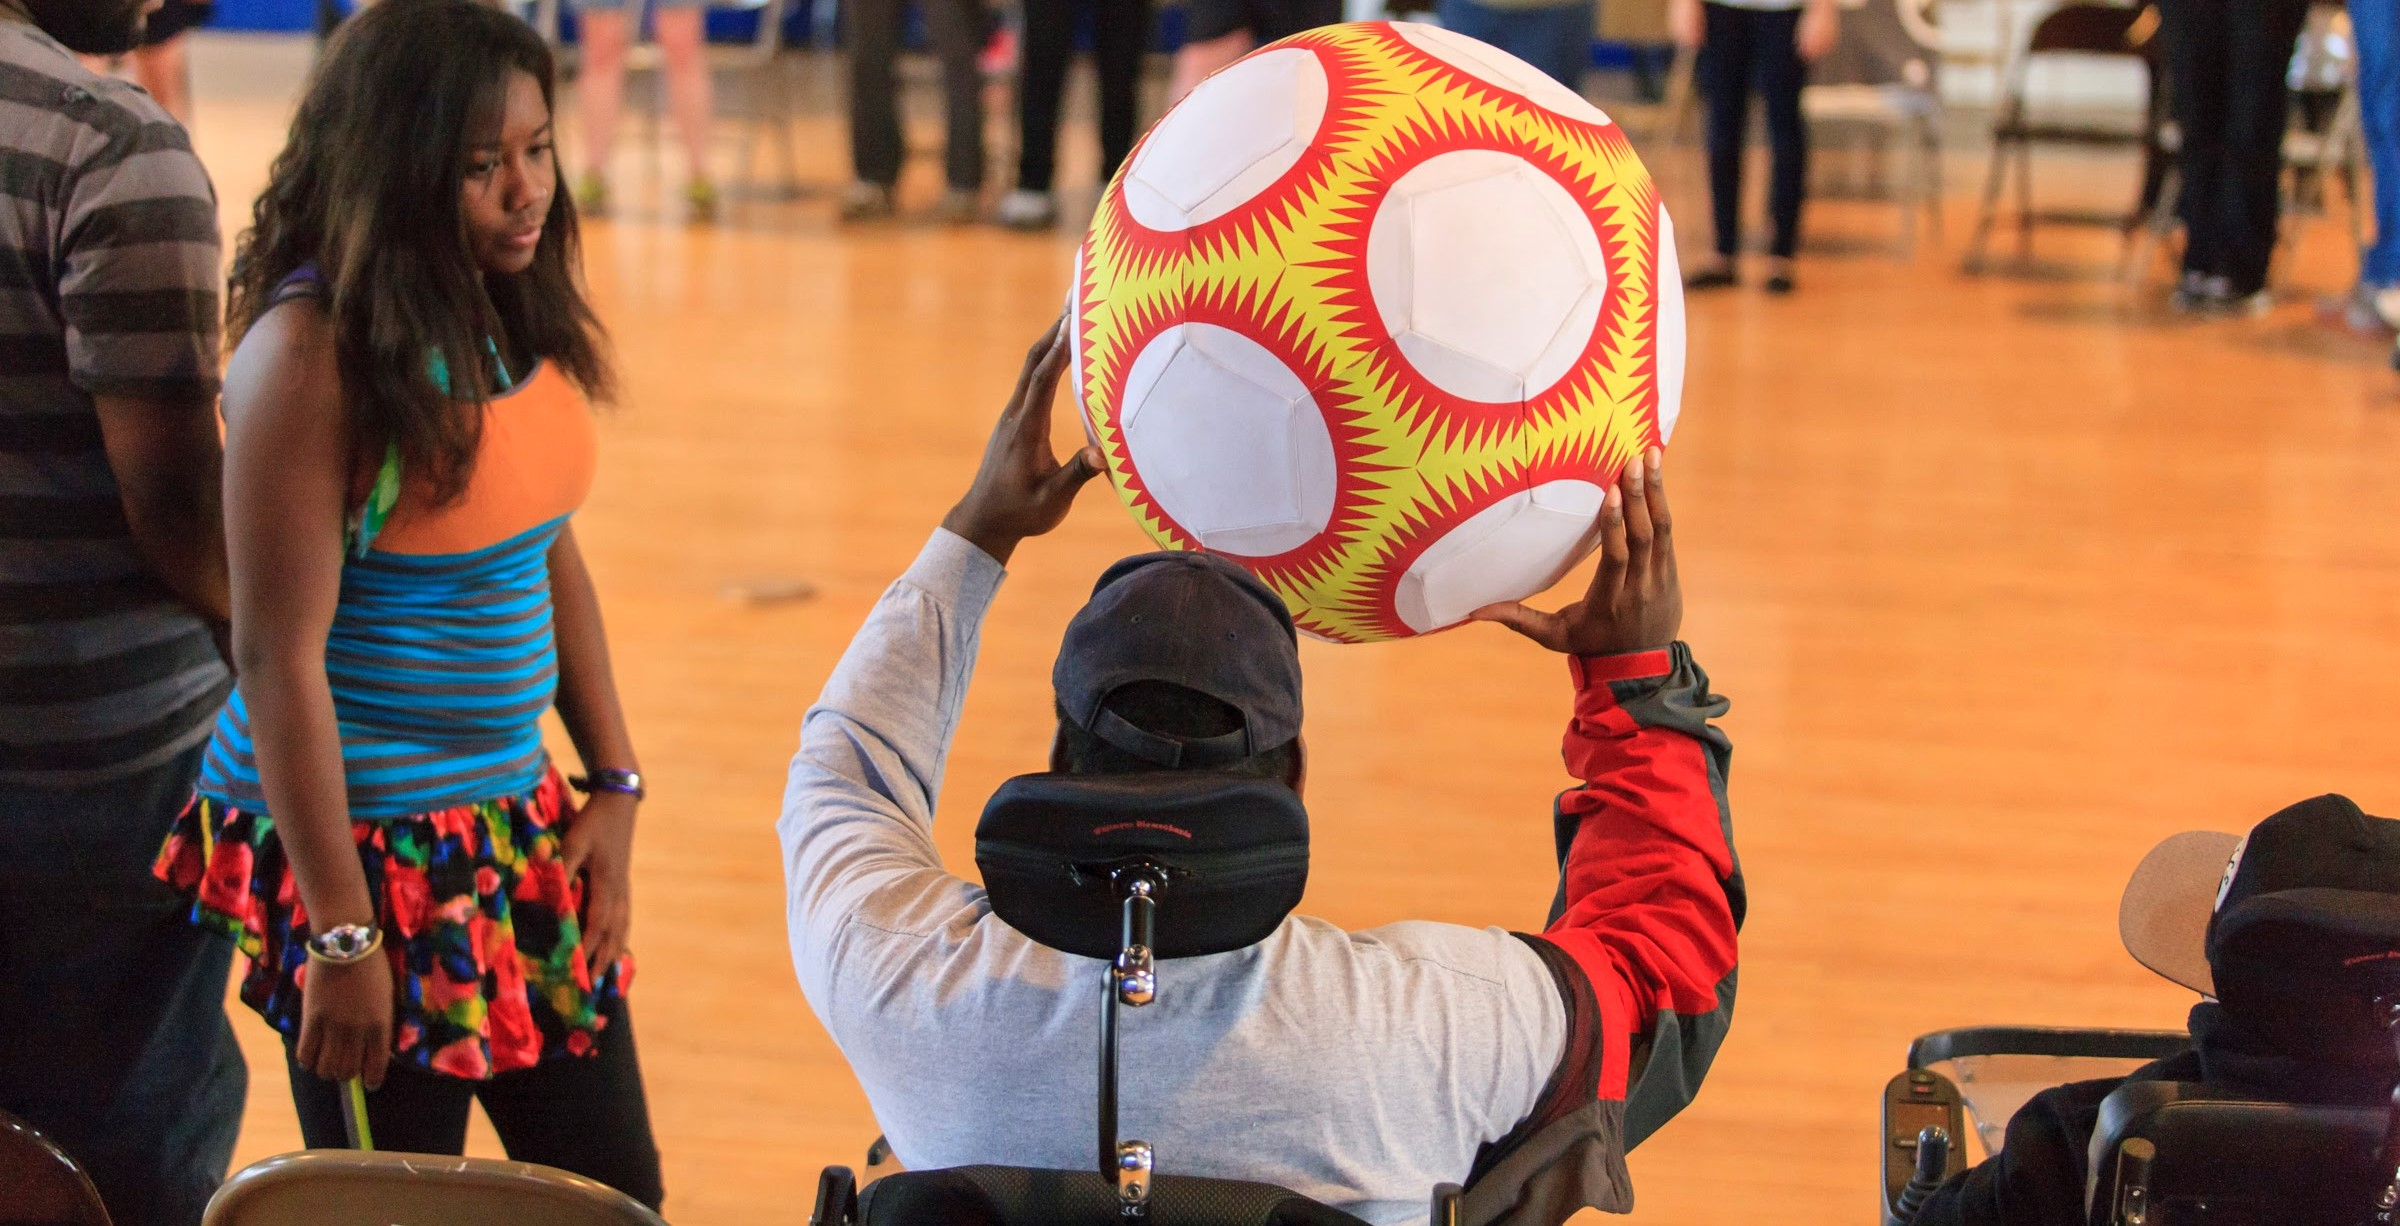 Man in wheel chair is holding up an orange and red ball. Another youth is standing next to them and looking at them.